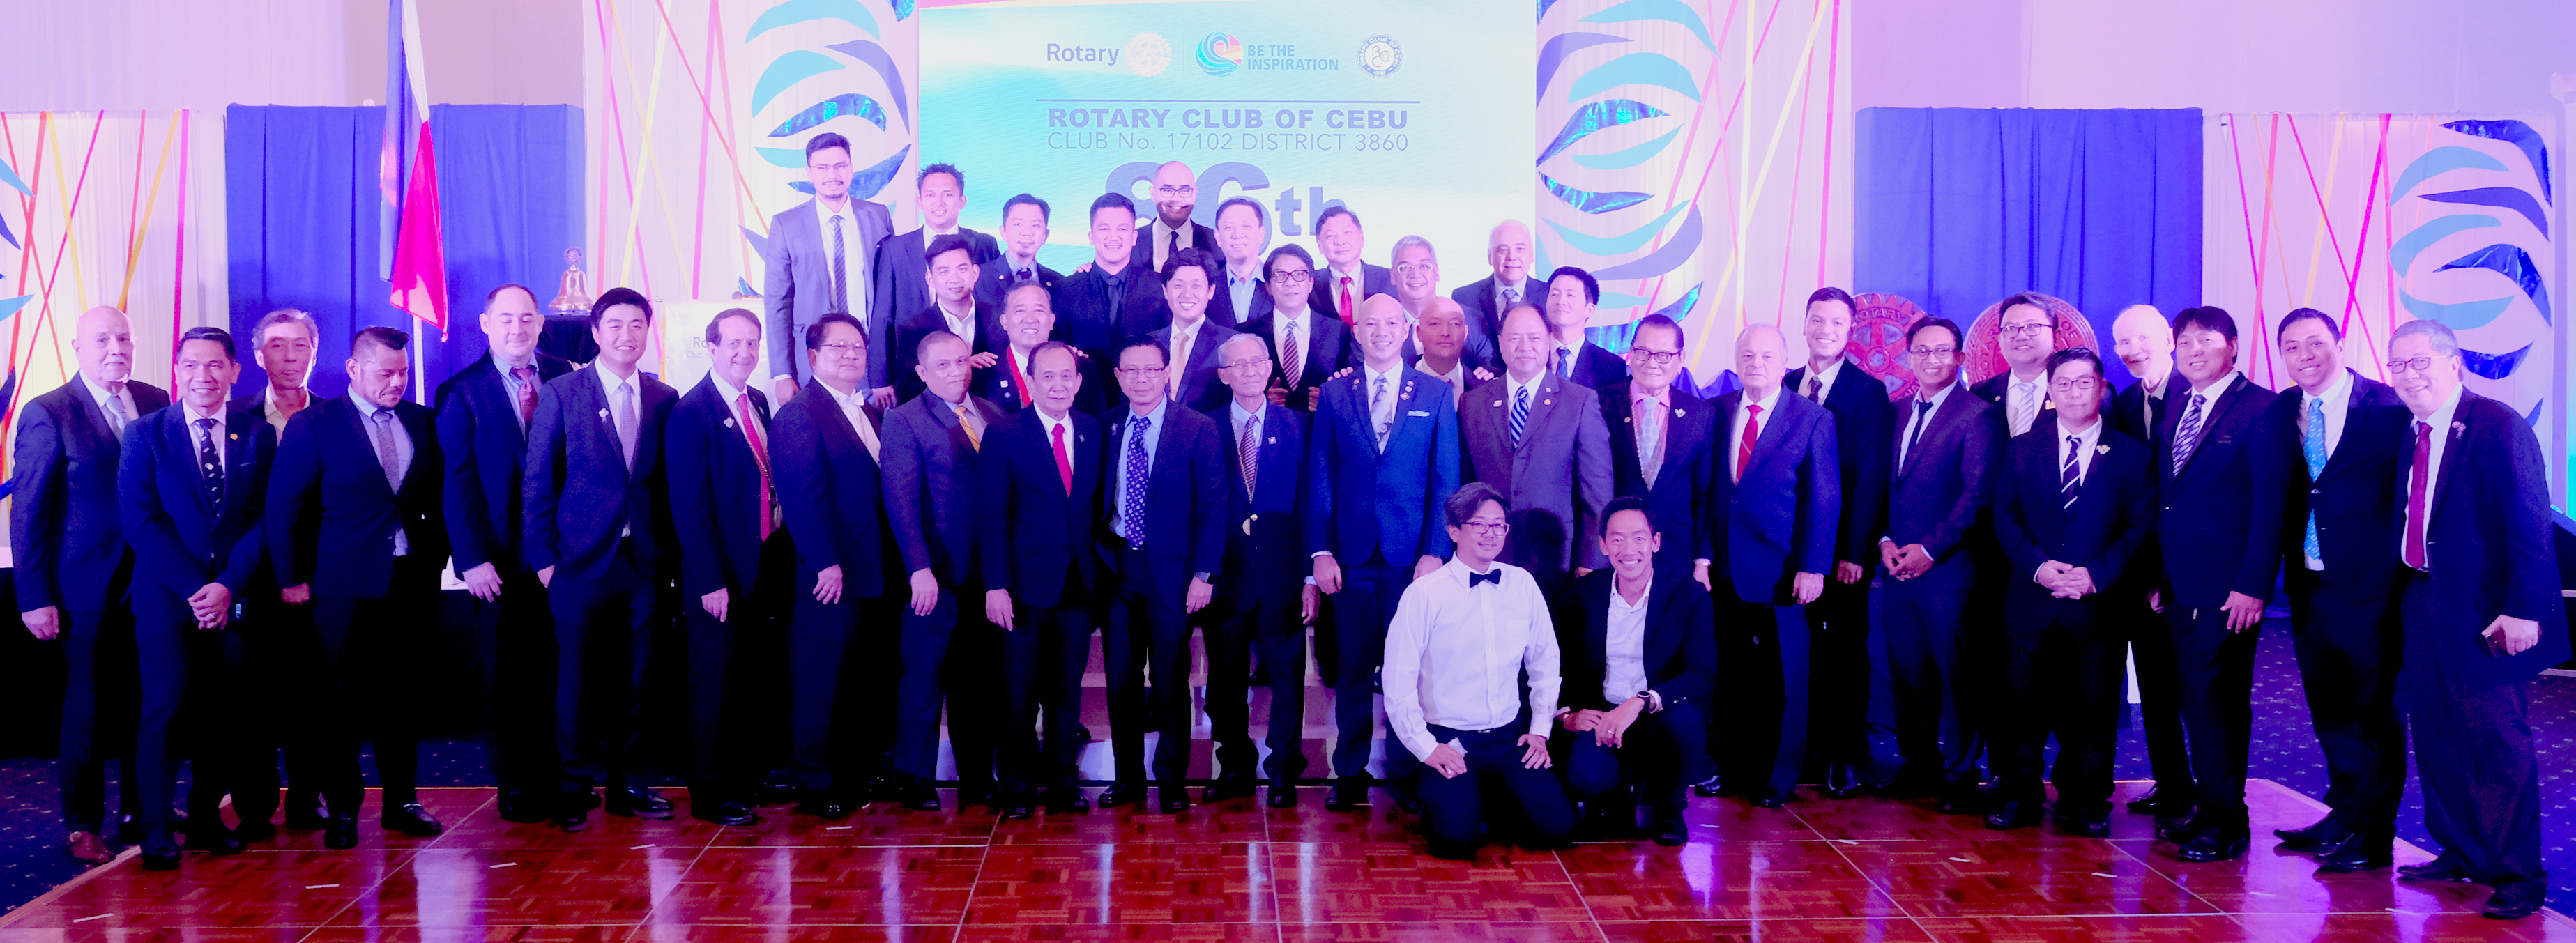 Rotary Club of Cebu Induction 2018-2019